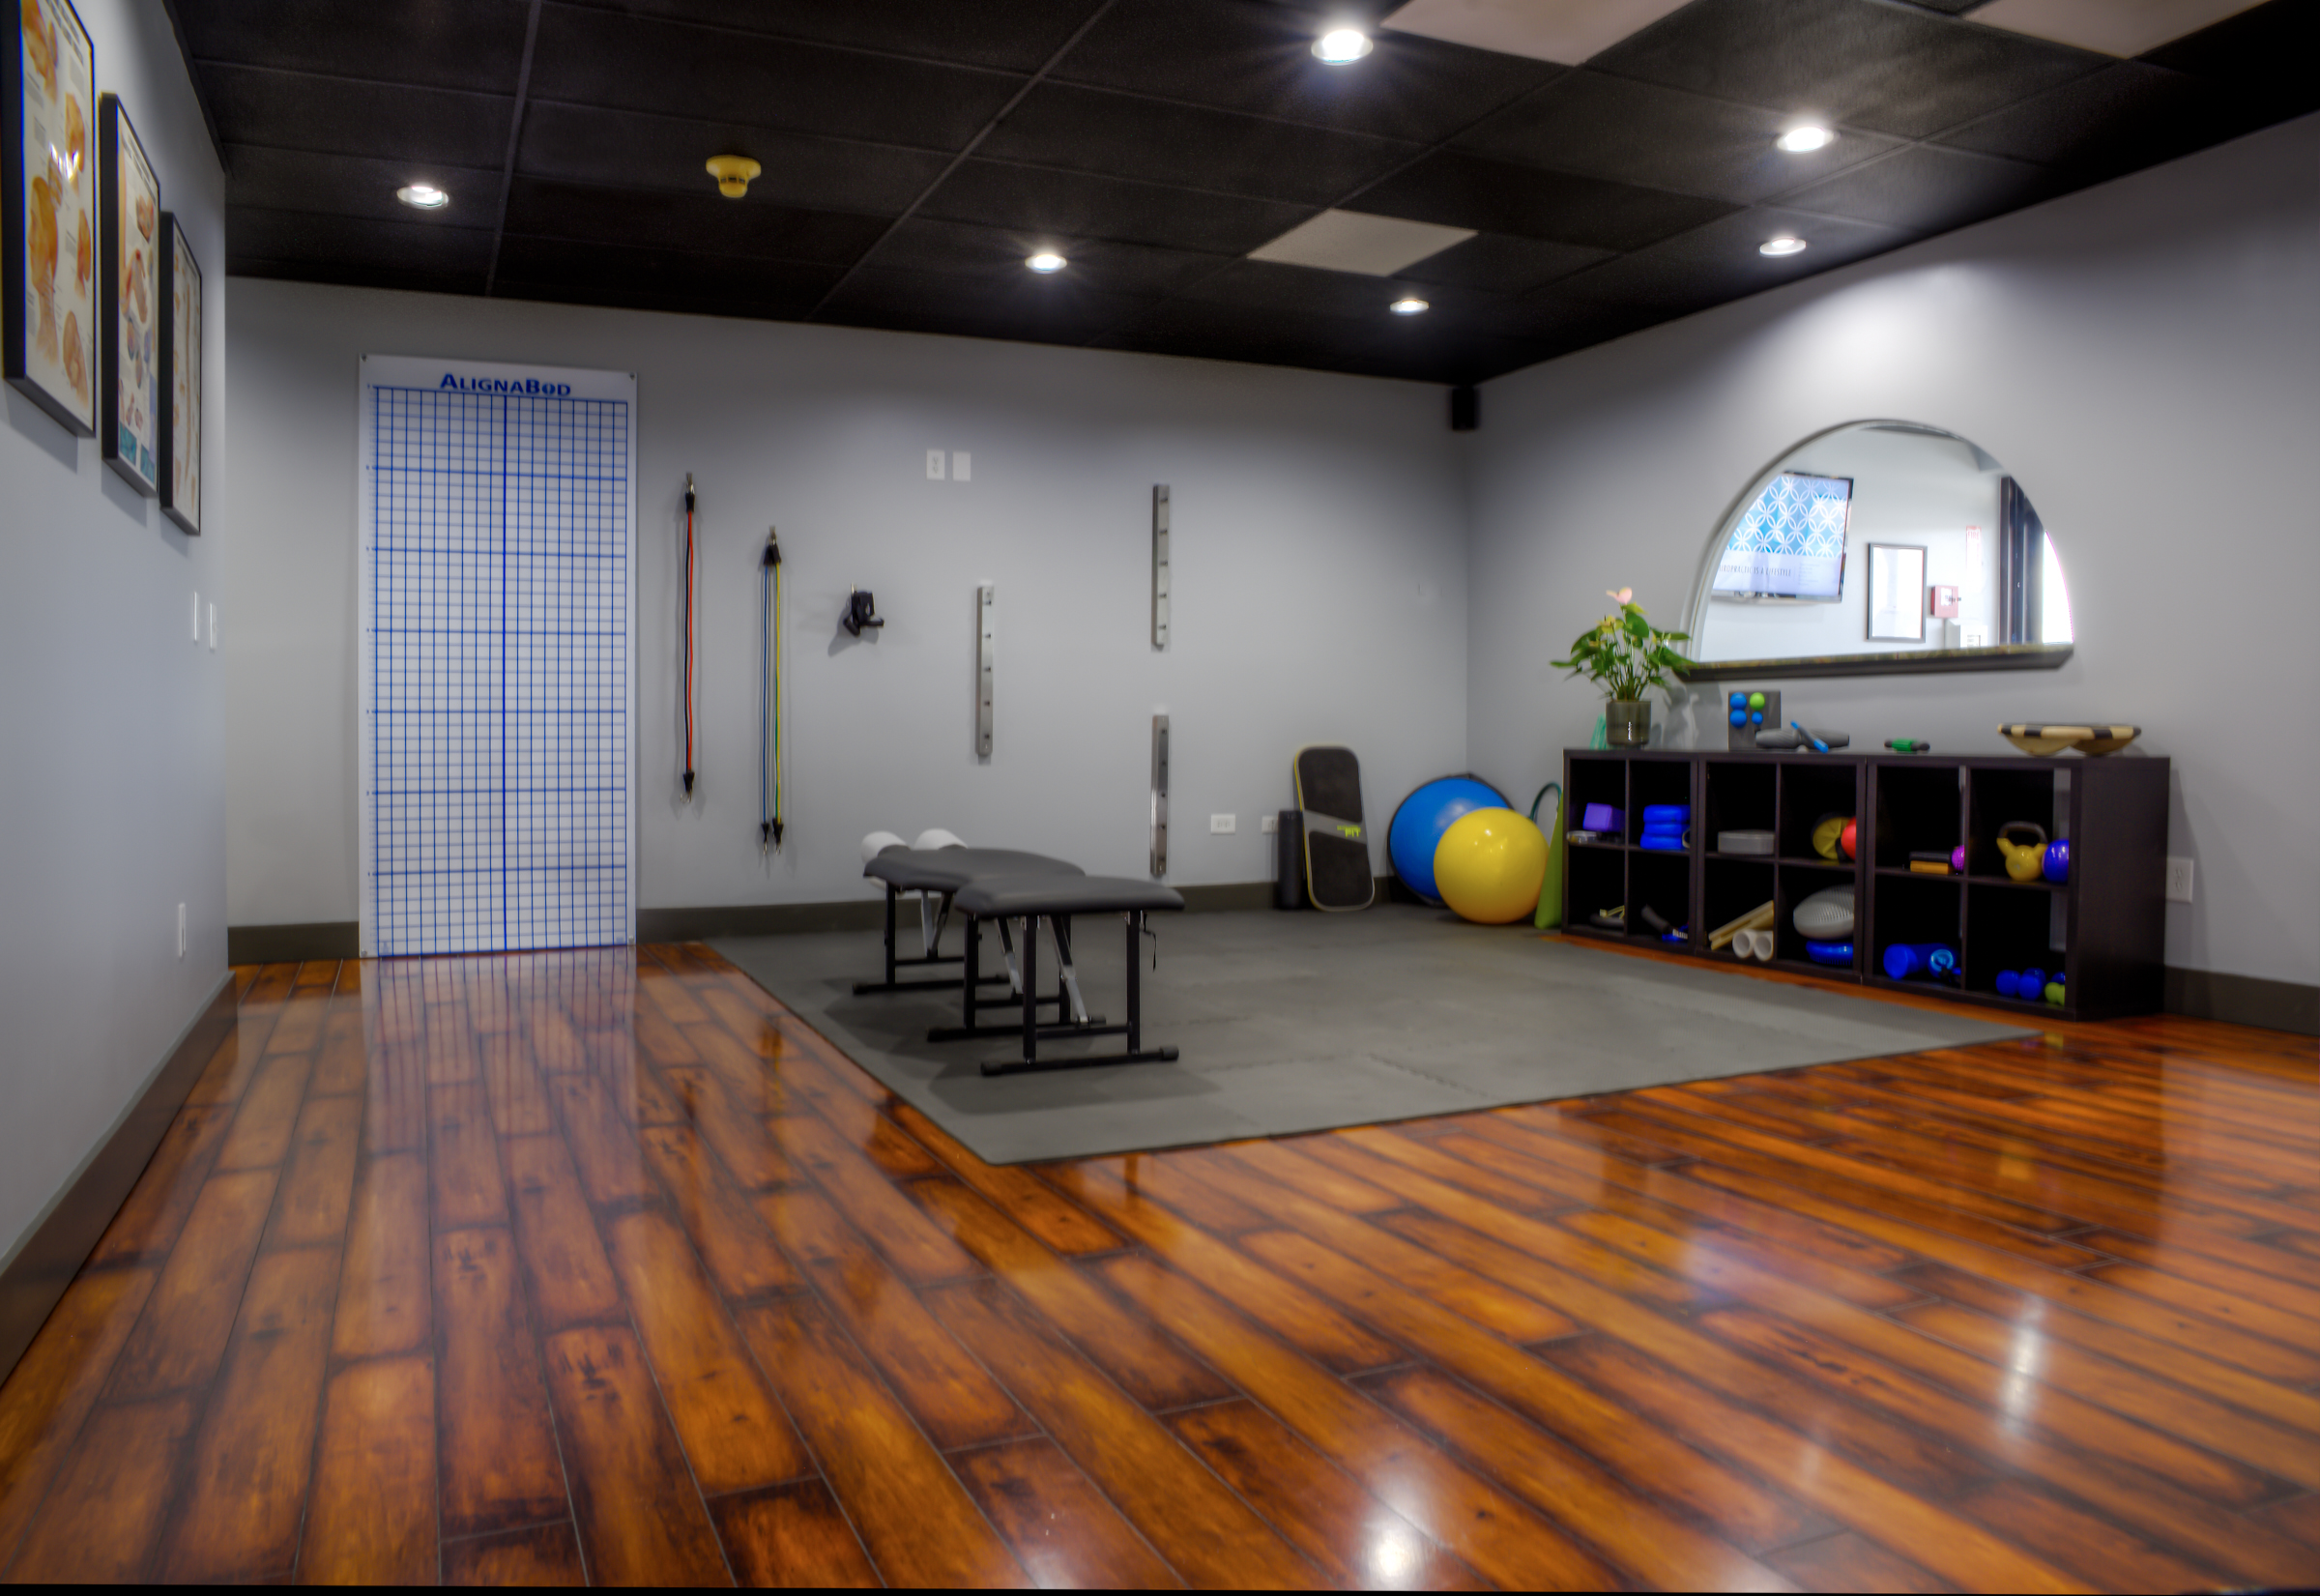 Comprehensive Chiropractic Interior 9.jpg